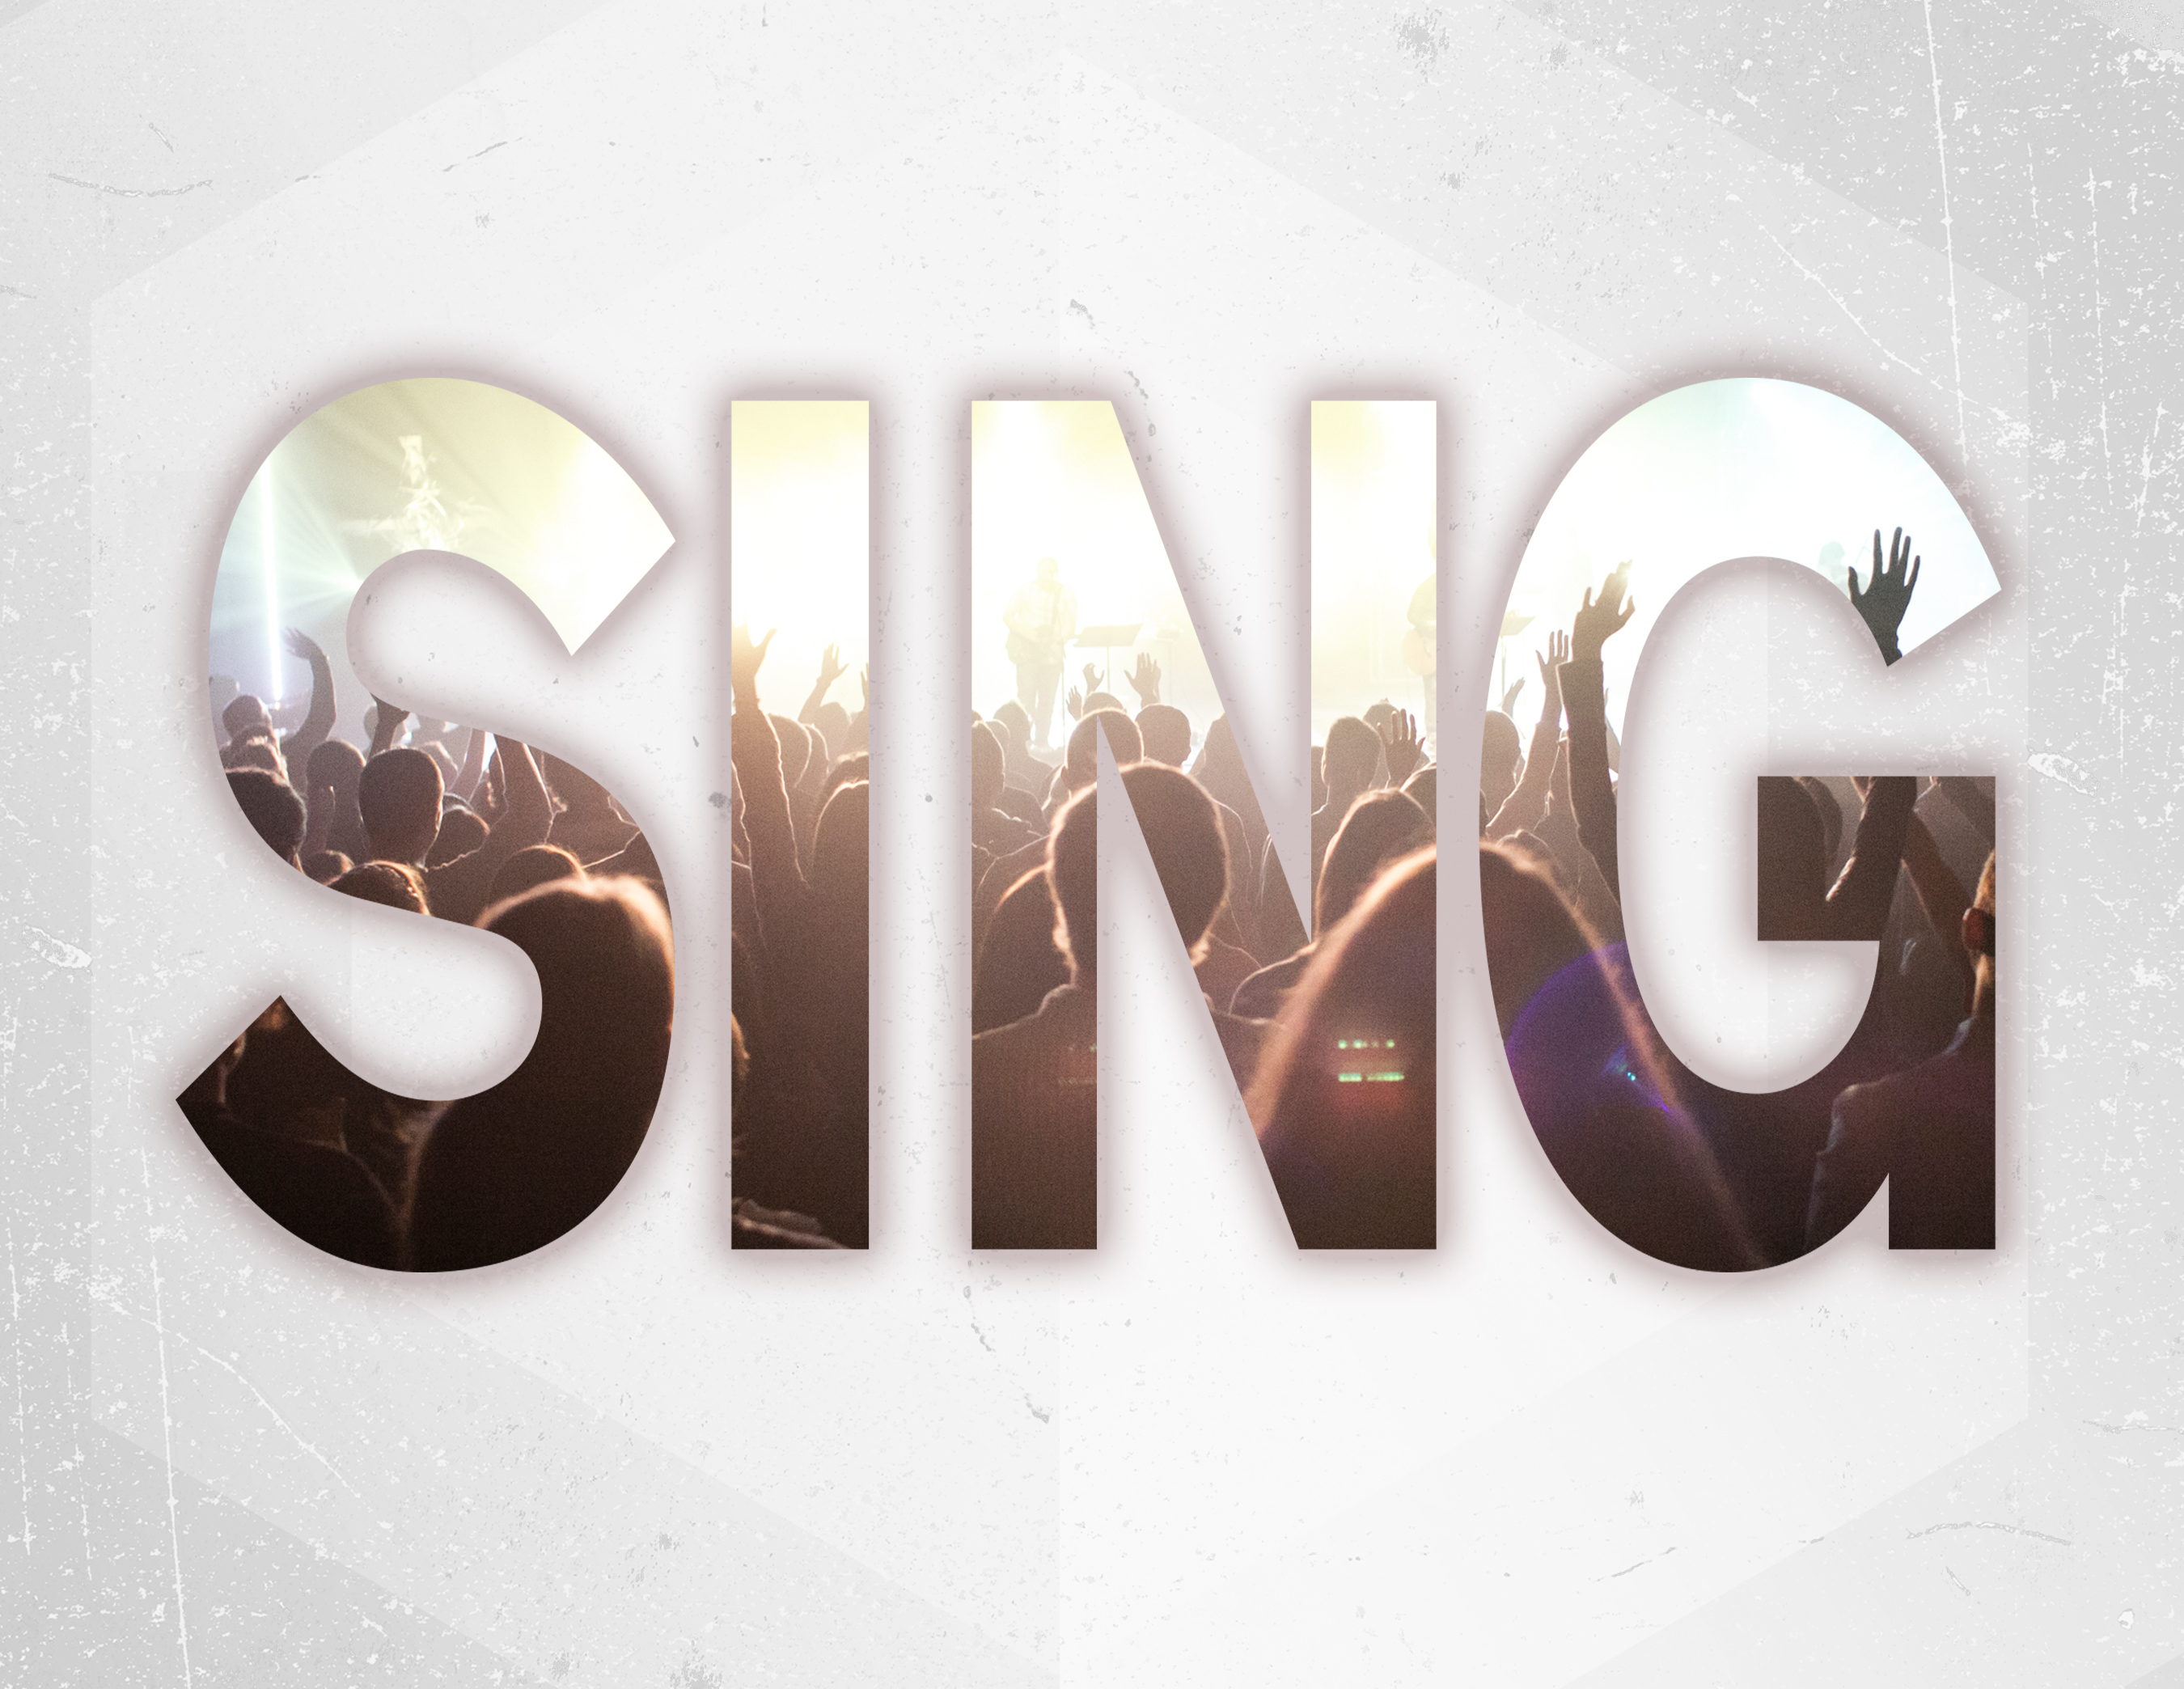 THE SINGING IN THE WORSHIP – Preach the Word